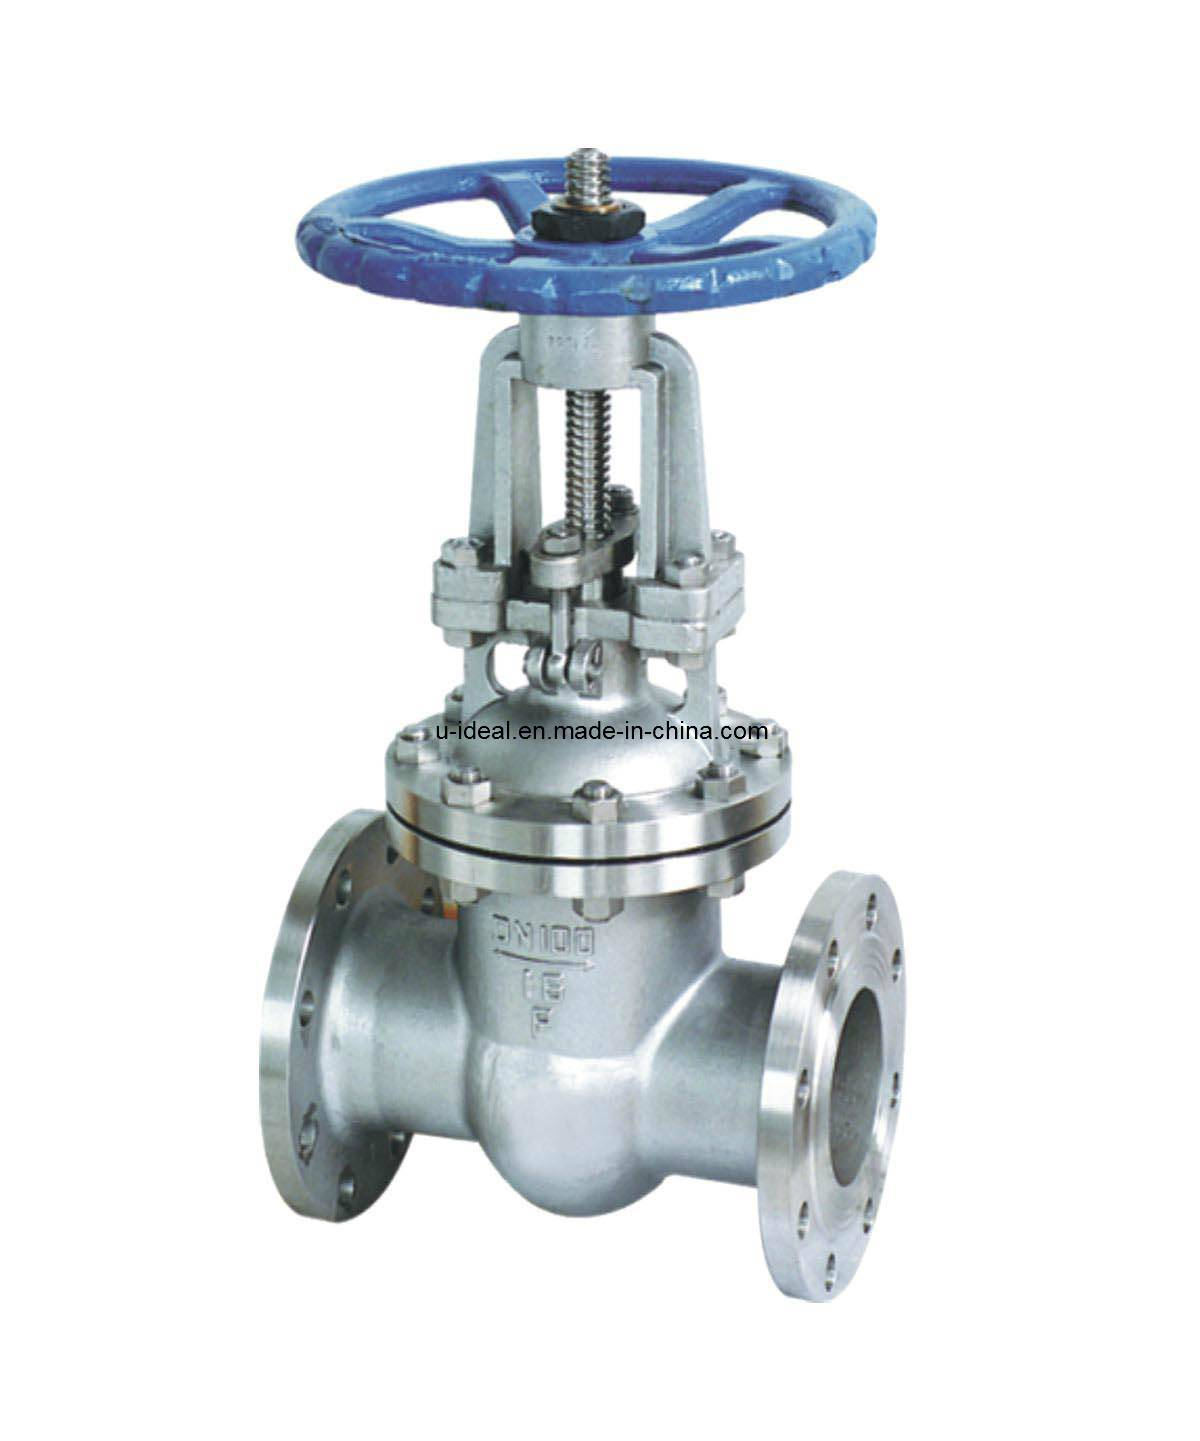 Stainless Steel ANSI Flanged Gate Valves